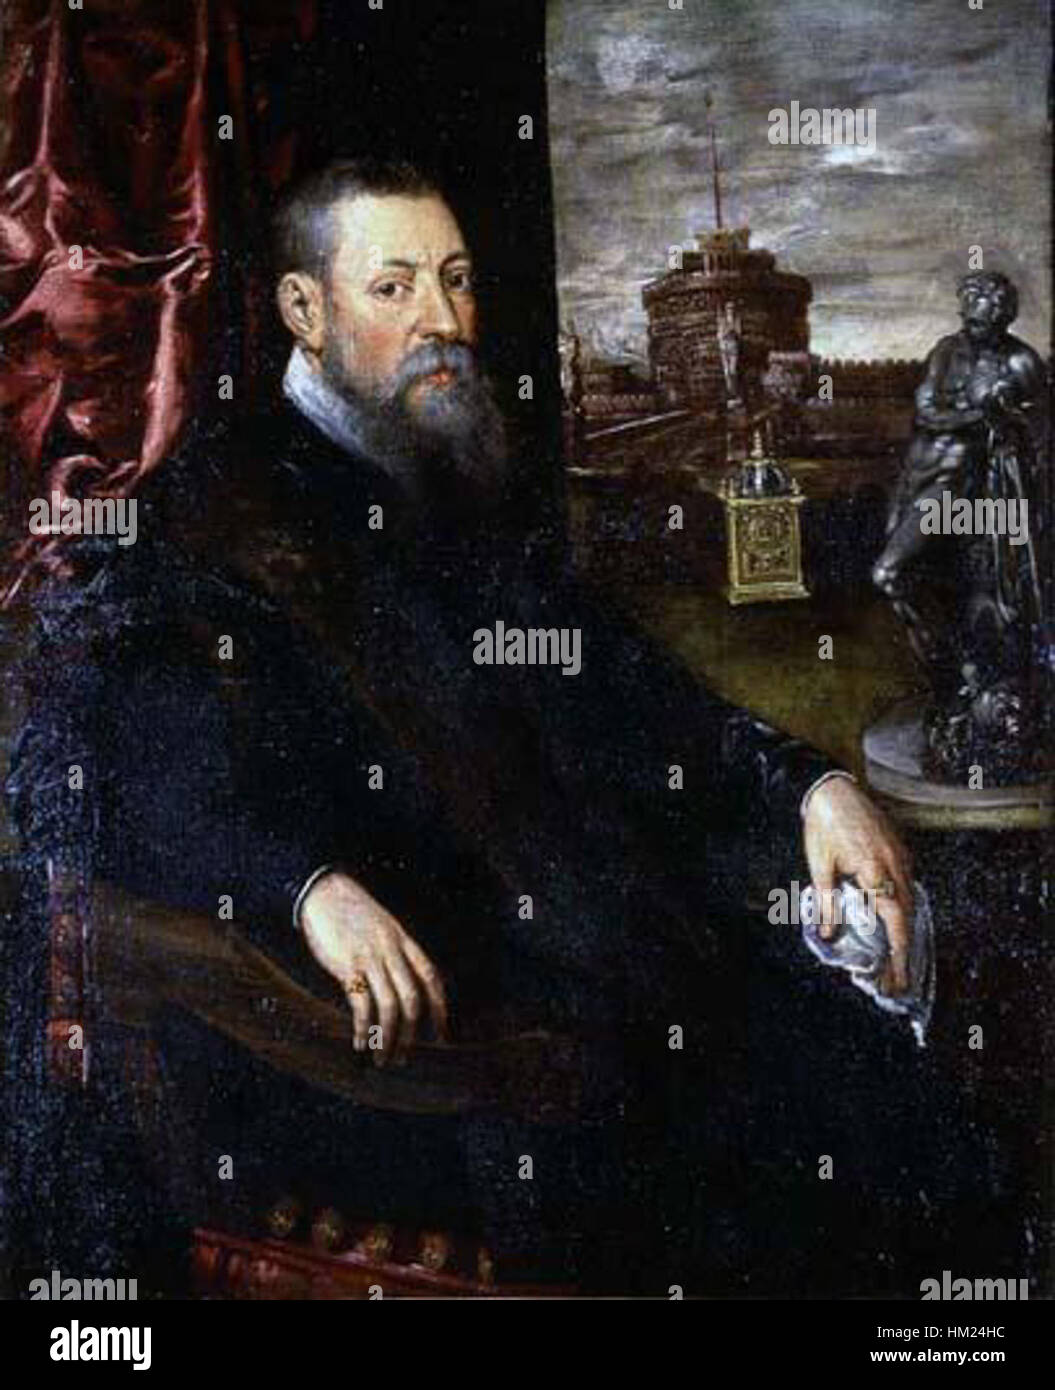 Jacopo Tintoretto - Portrait of a Collector - Stock Image